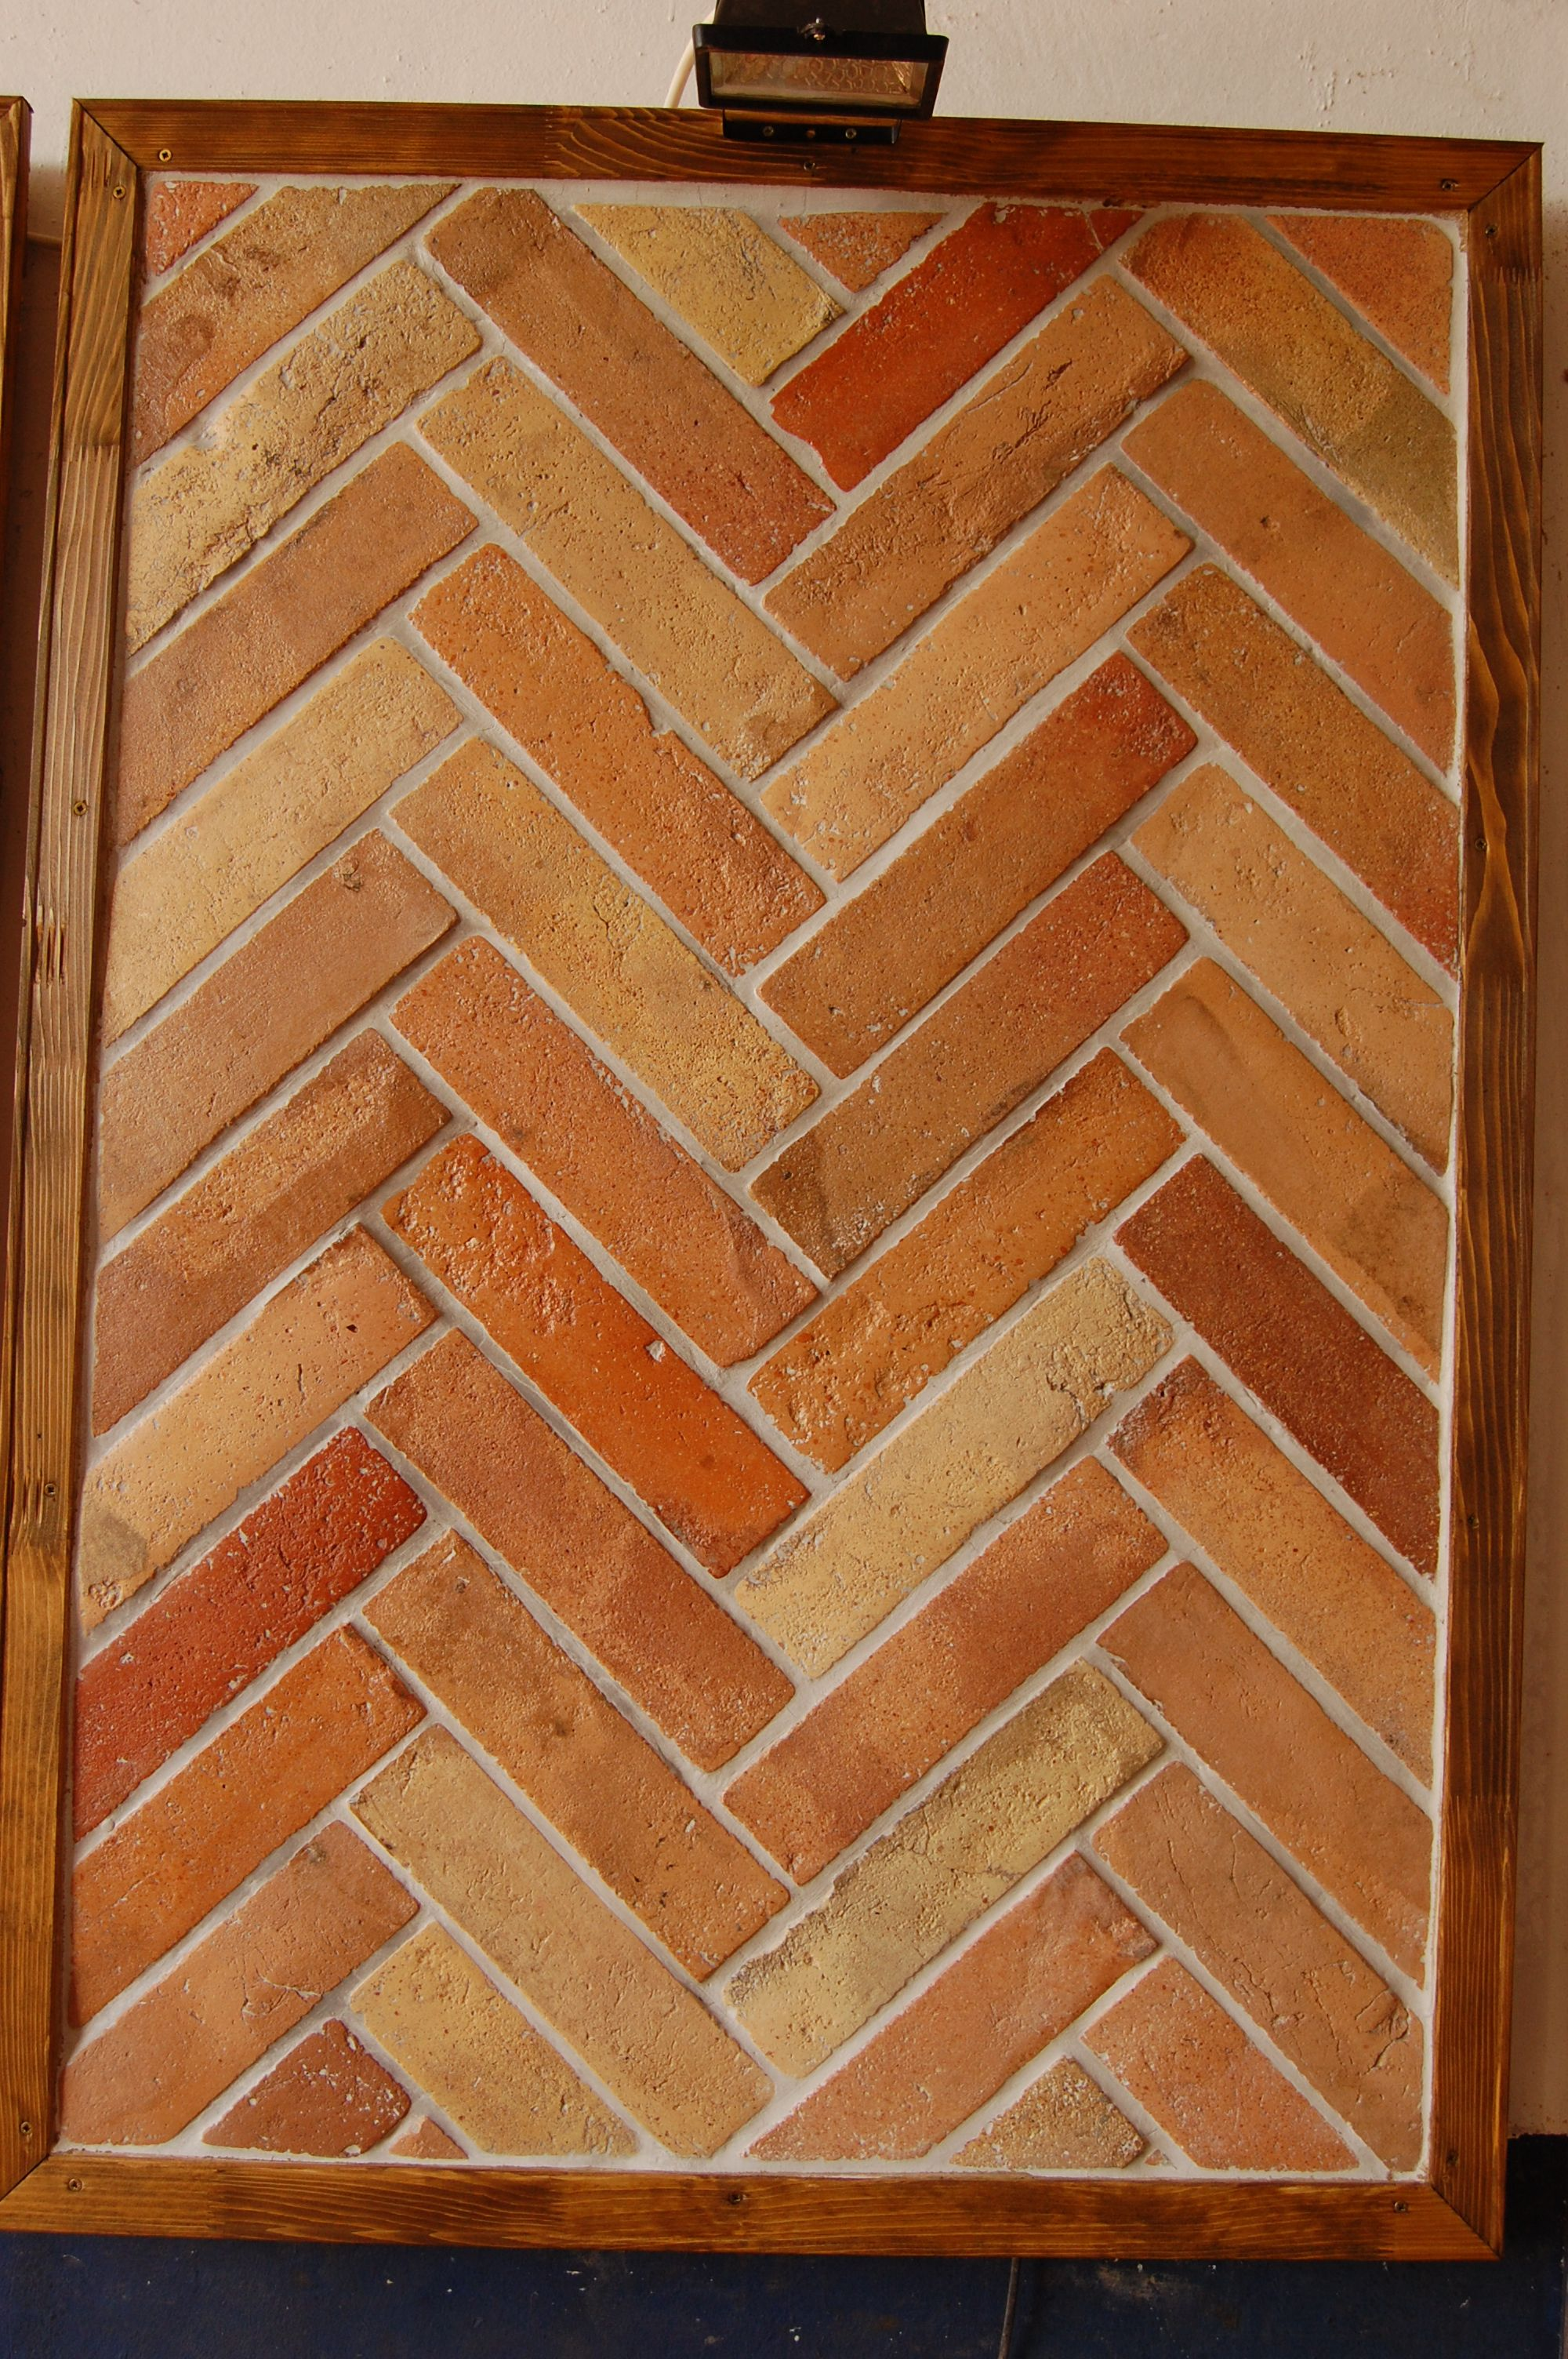 Reclaimed hand finished terracotta tiles parquet reclaimed reclaimed terracotta brick floor tiles tile flooring was used around the world for hundreds of years dailygadgetfo Images